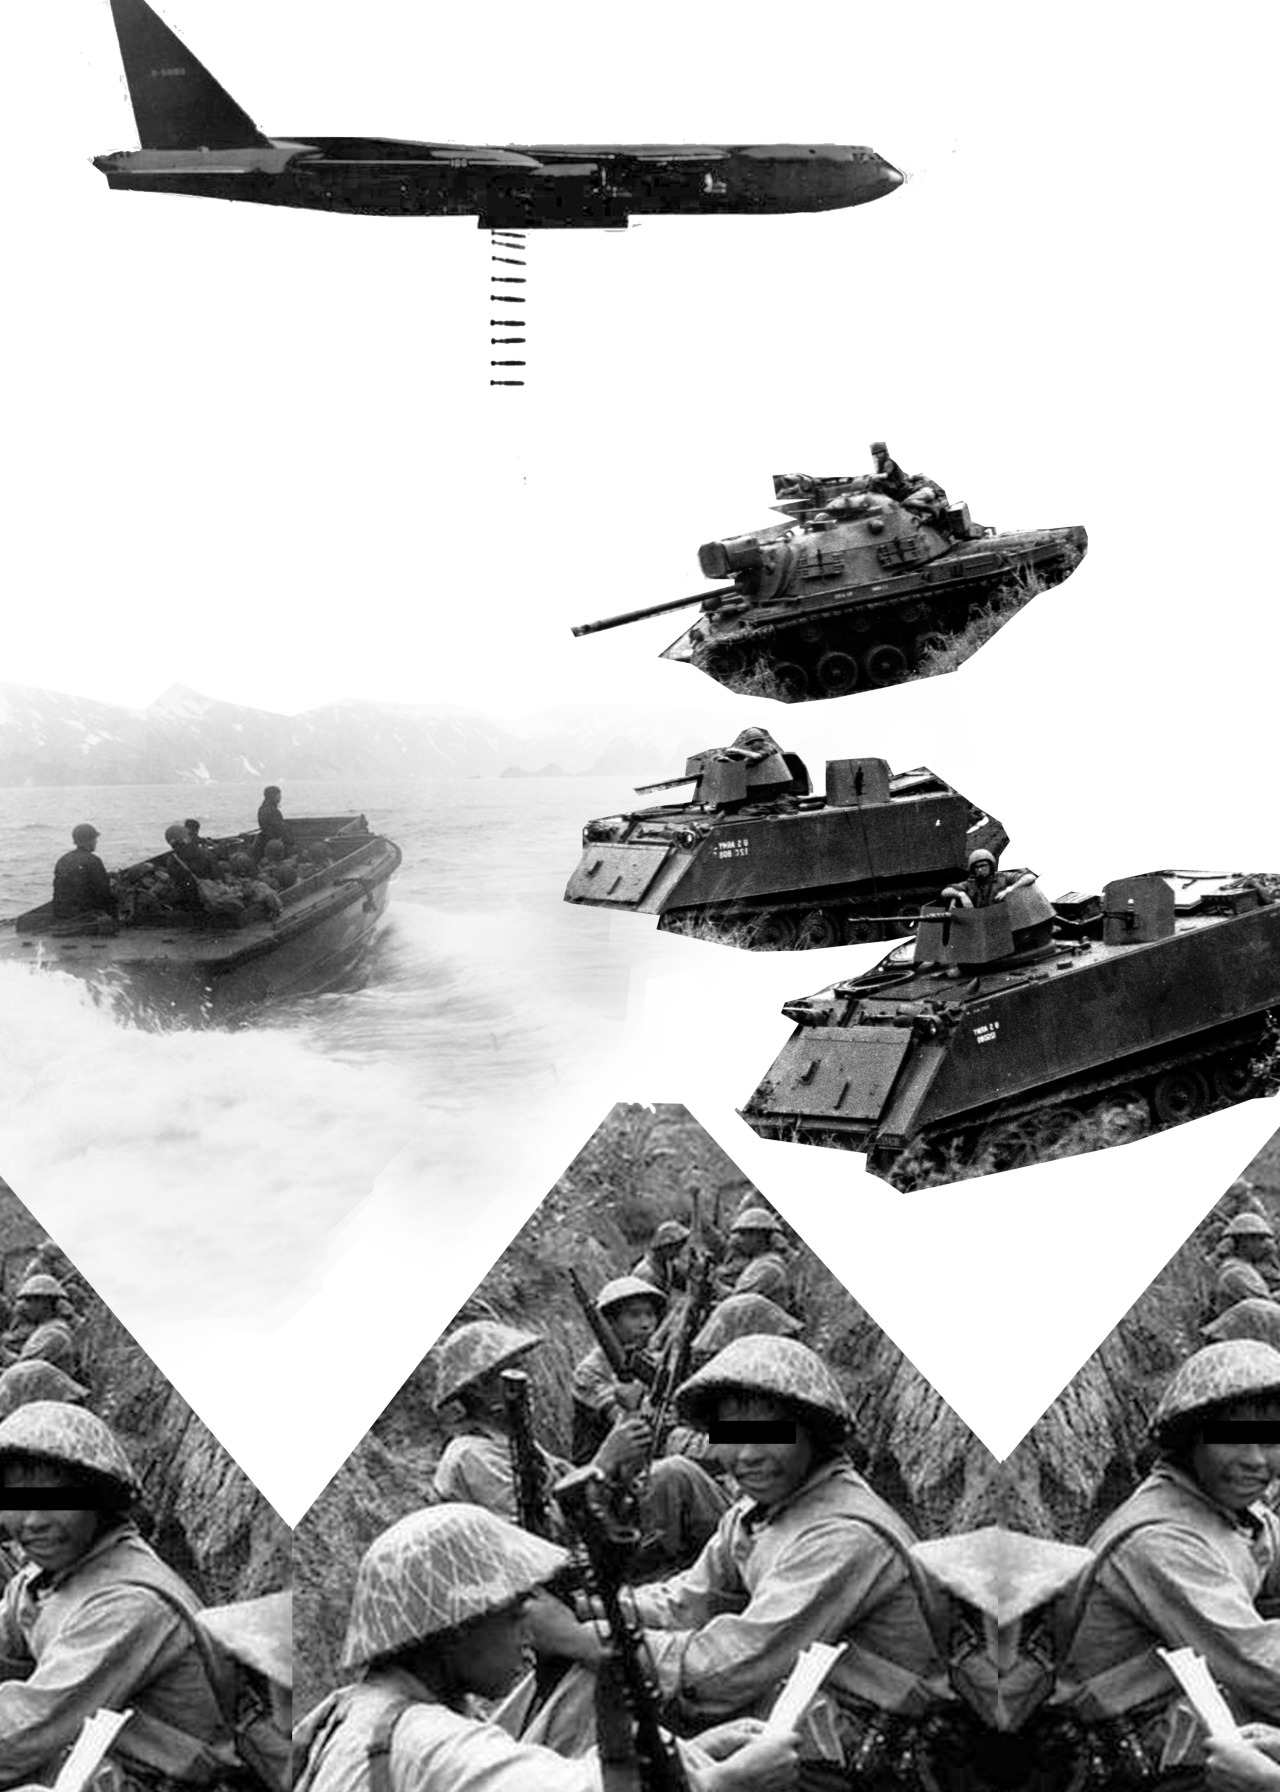 Collage of Vietnamese soldiers in the trenches with a black bar over one of their eyes. Three American tanks are coming in. A boat is heading away from the trenches. An airplane overhead is dropping bombs.